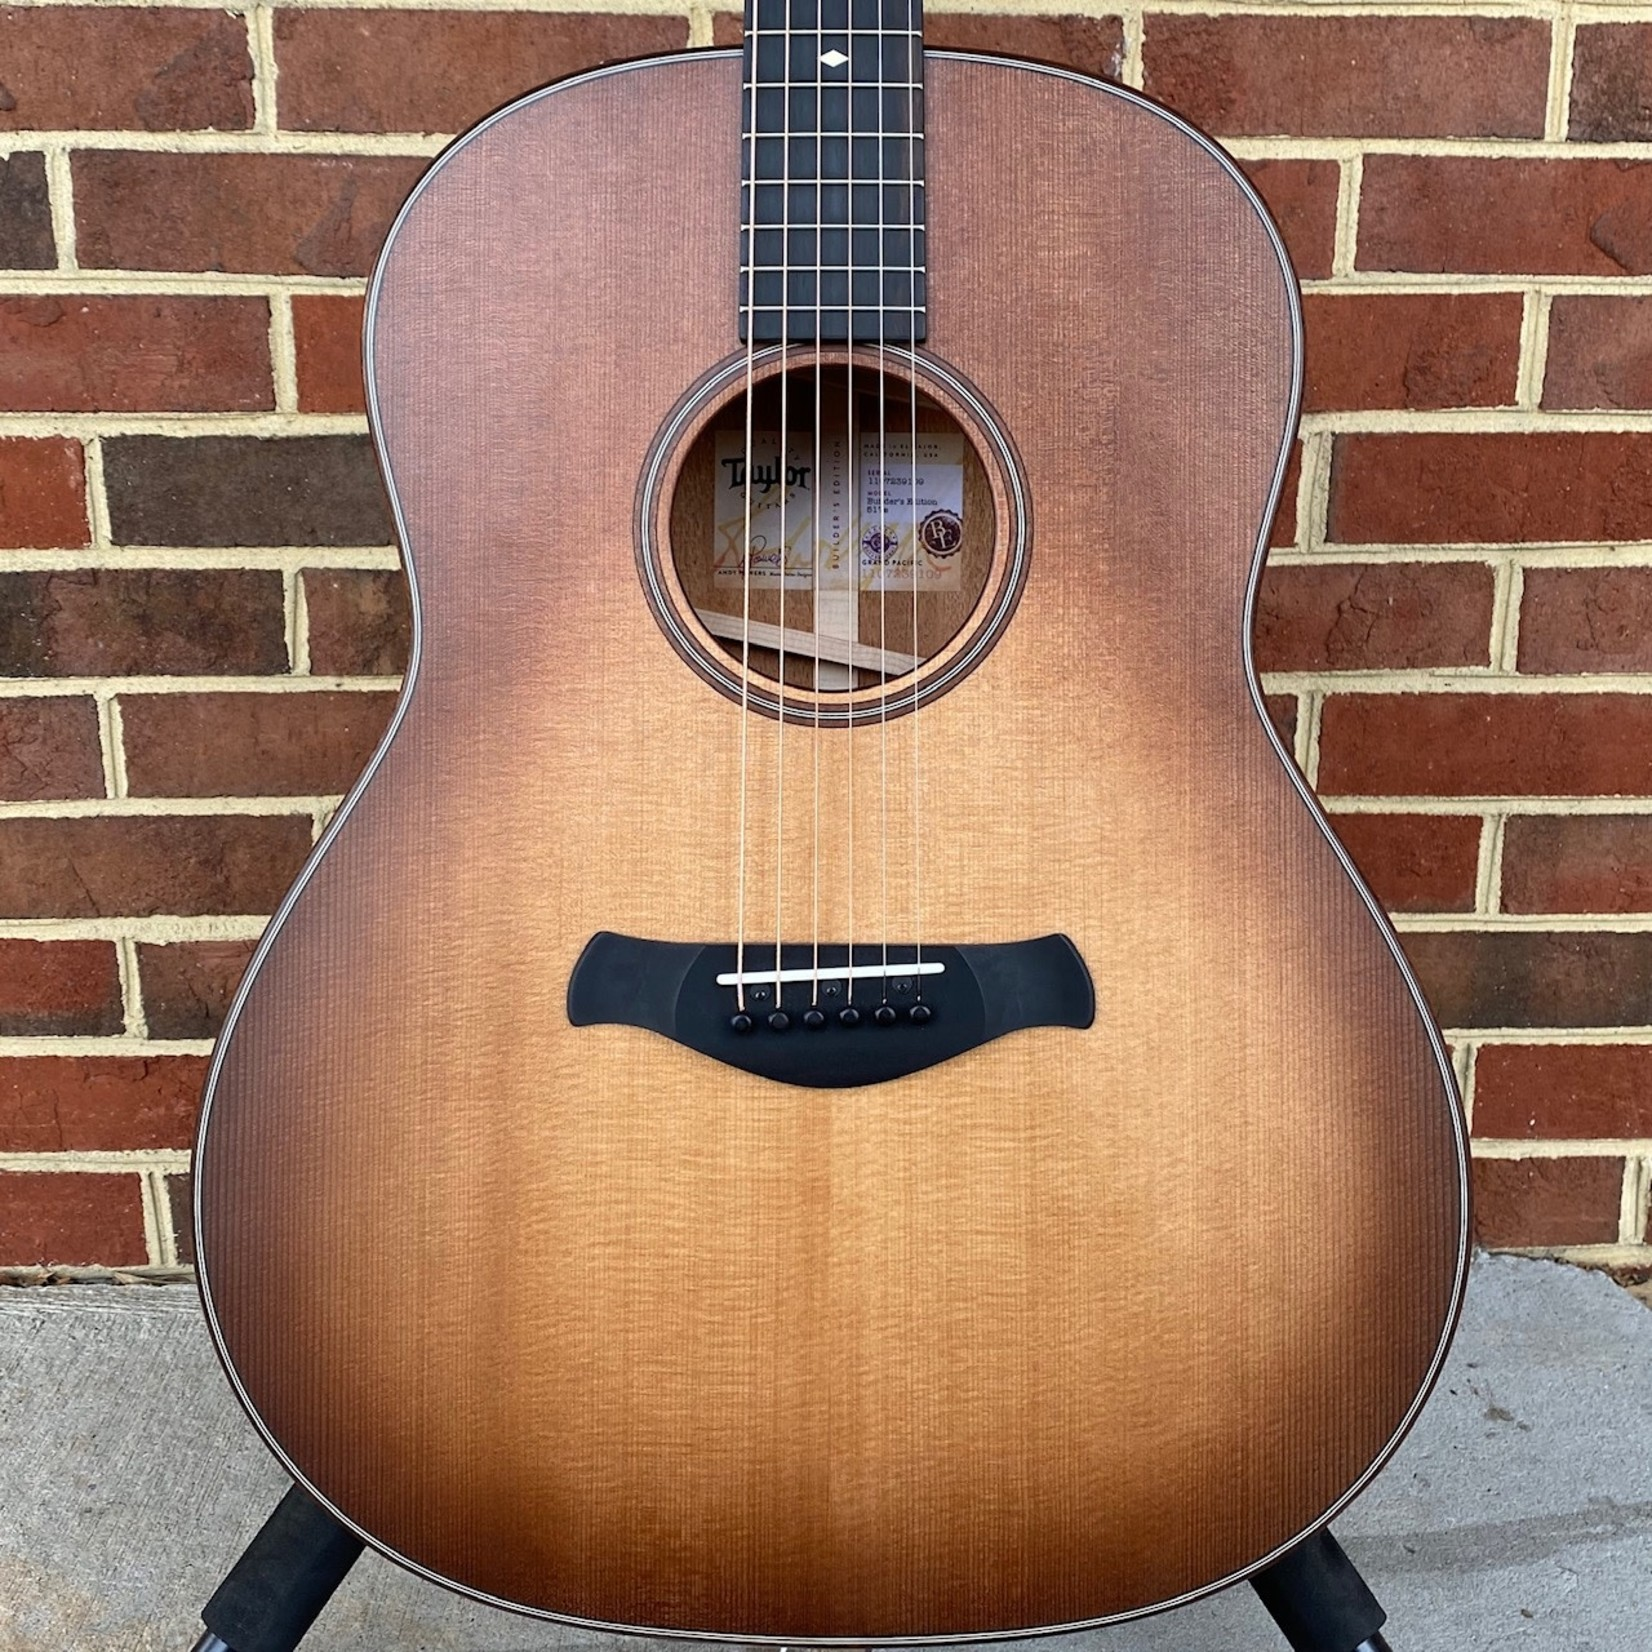 Taylor Taylor Builder's Edition 517e, Grand Pacific, V-Class, Torrefied Sitka Spruce Top, Neo-Tropical Mahogany Back and Sides, ES2 Electronics, Wild Honey Burst